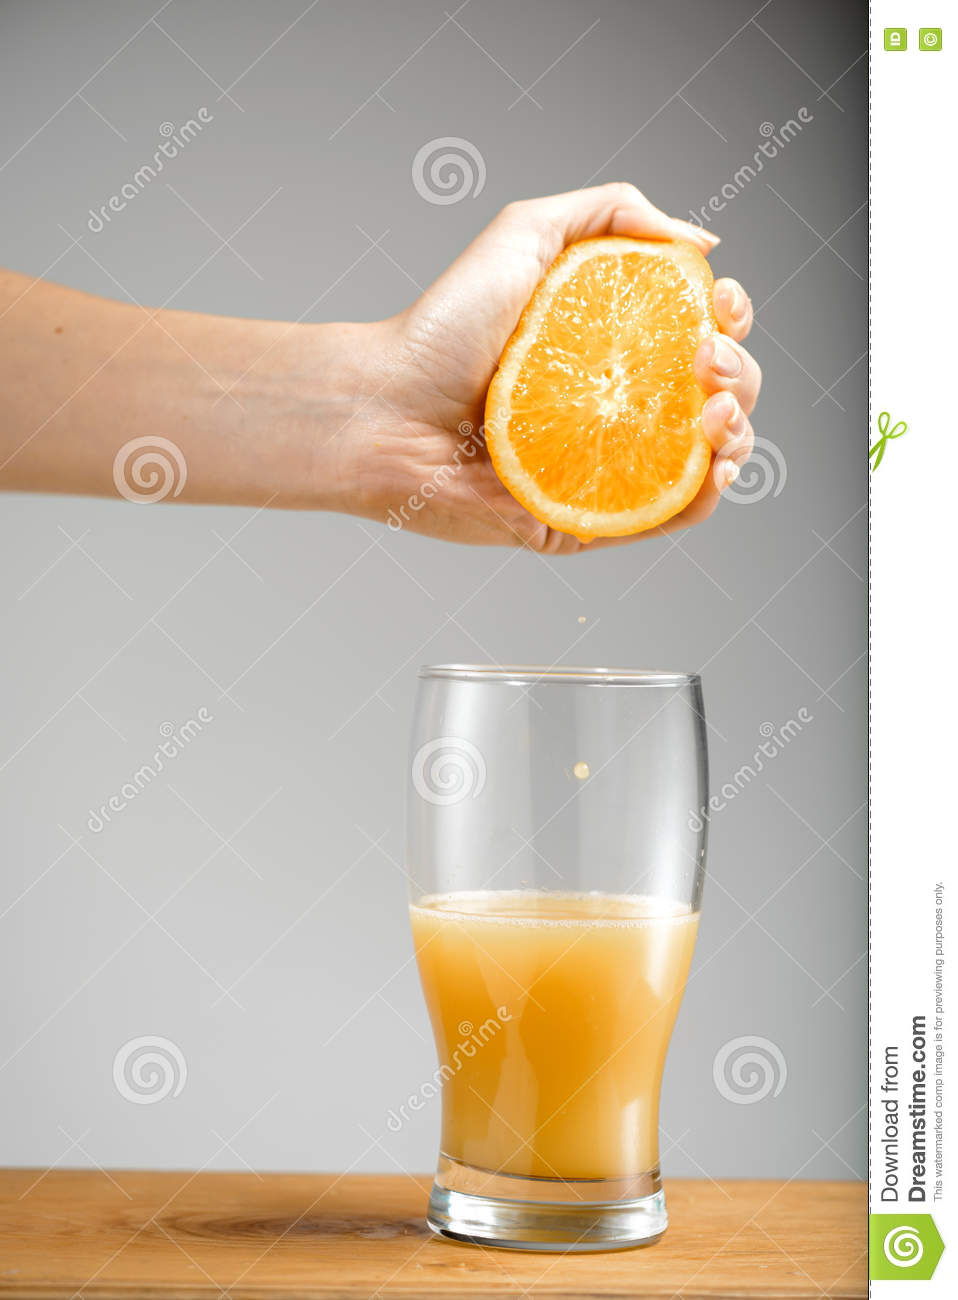 Girl s hand squeezing out juice from orange into glass.